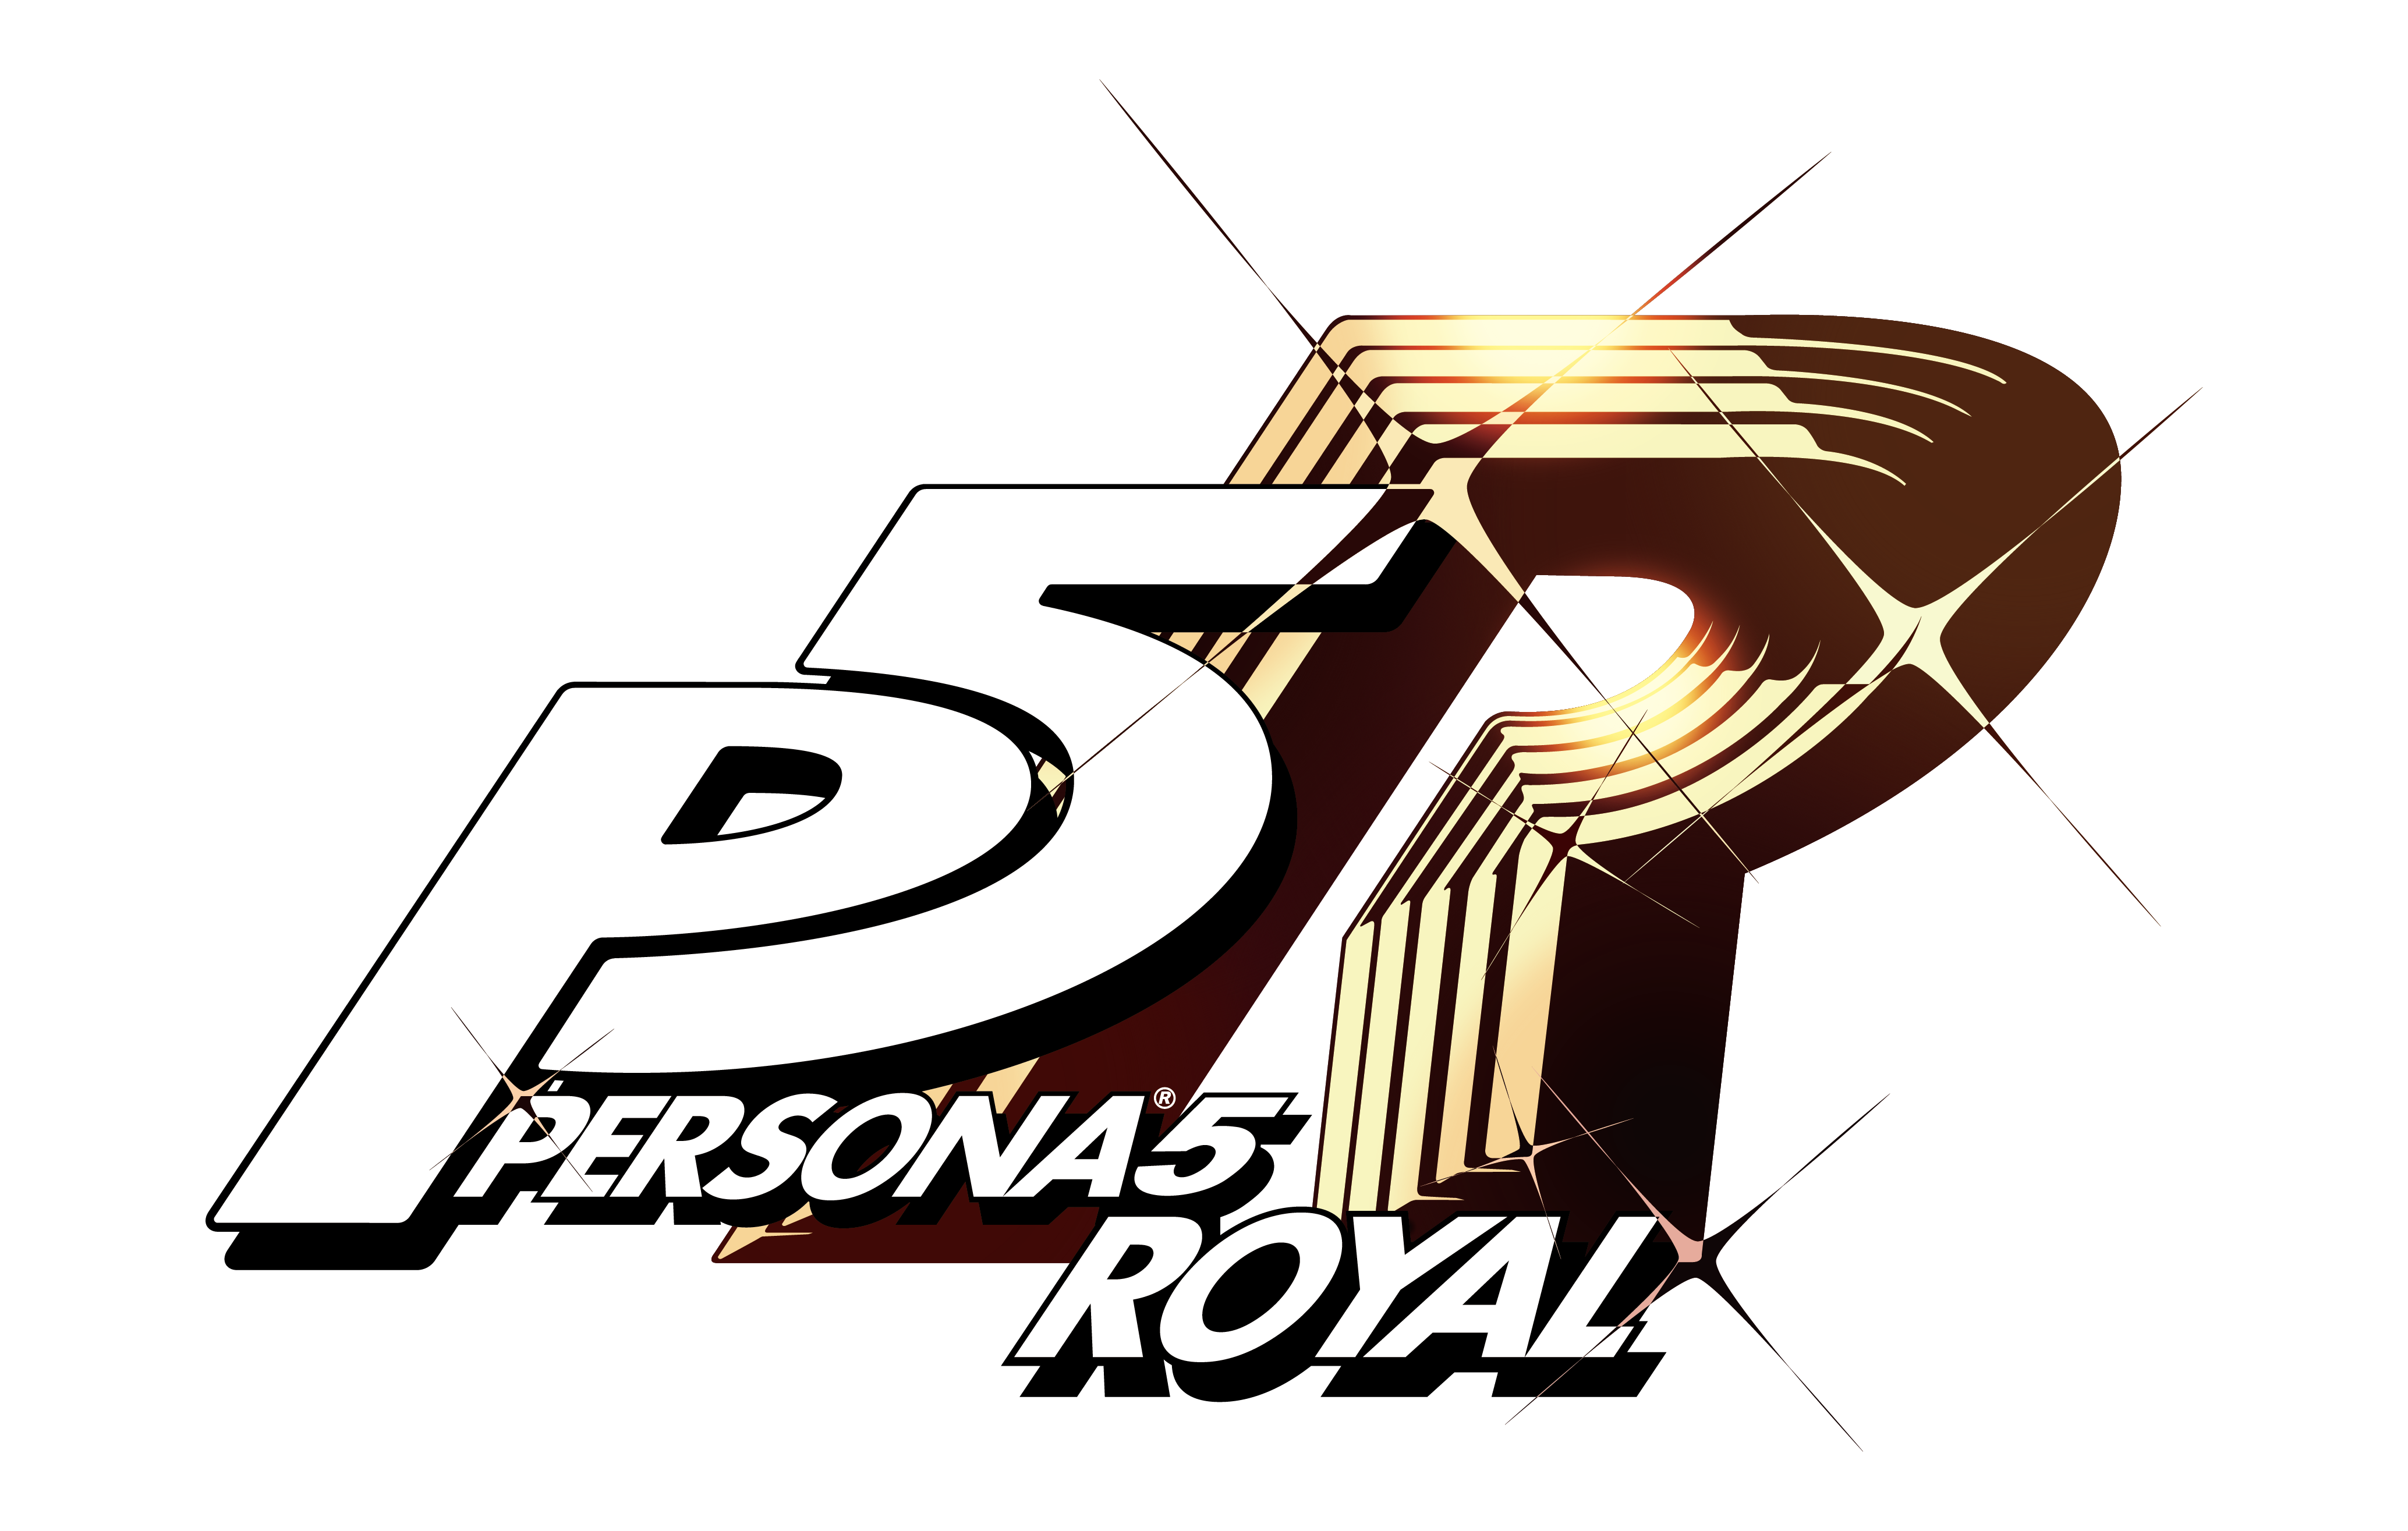 Persona 5 Royal Official Website Hey everyone, after having been a long time persona fan and rainmeter fan, i decided to try my hand at making. persona 5 royal official website